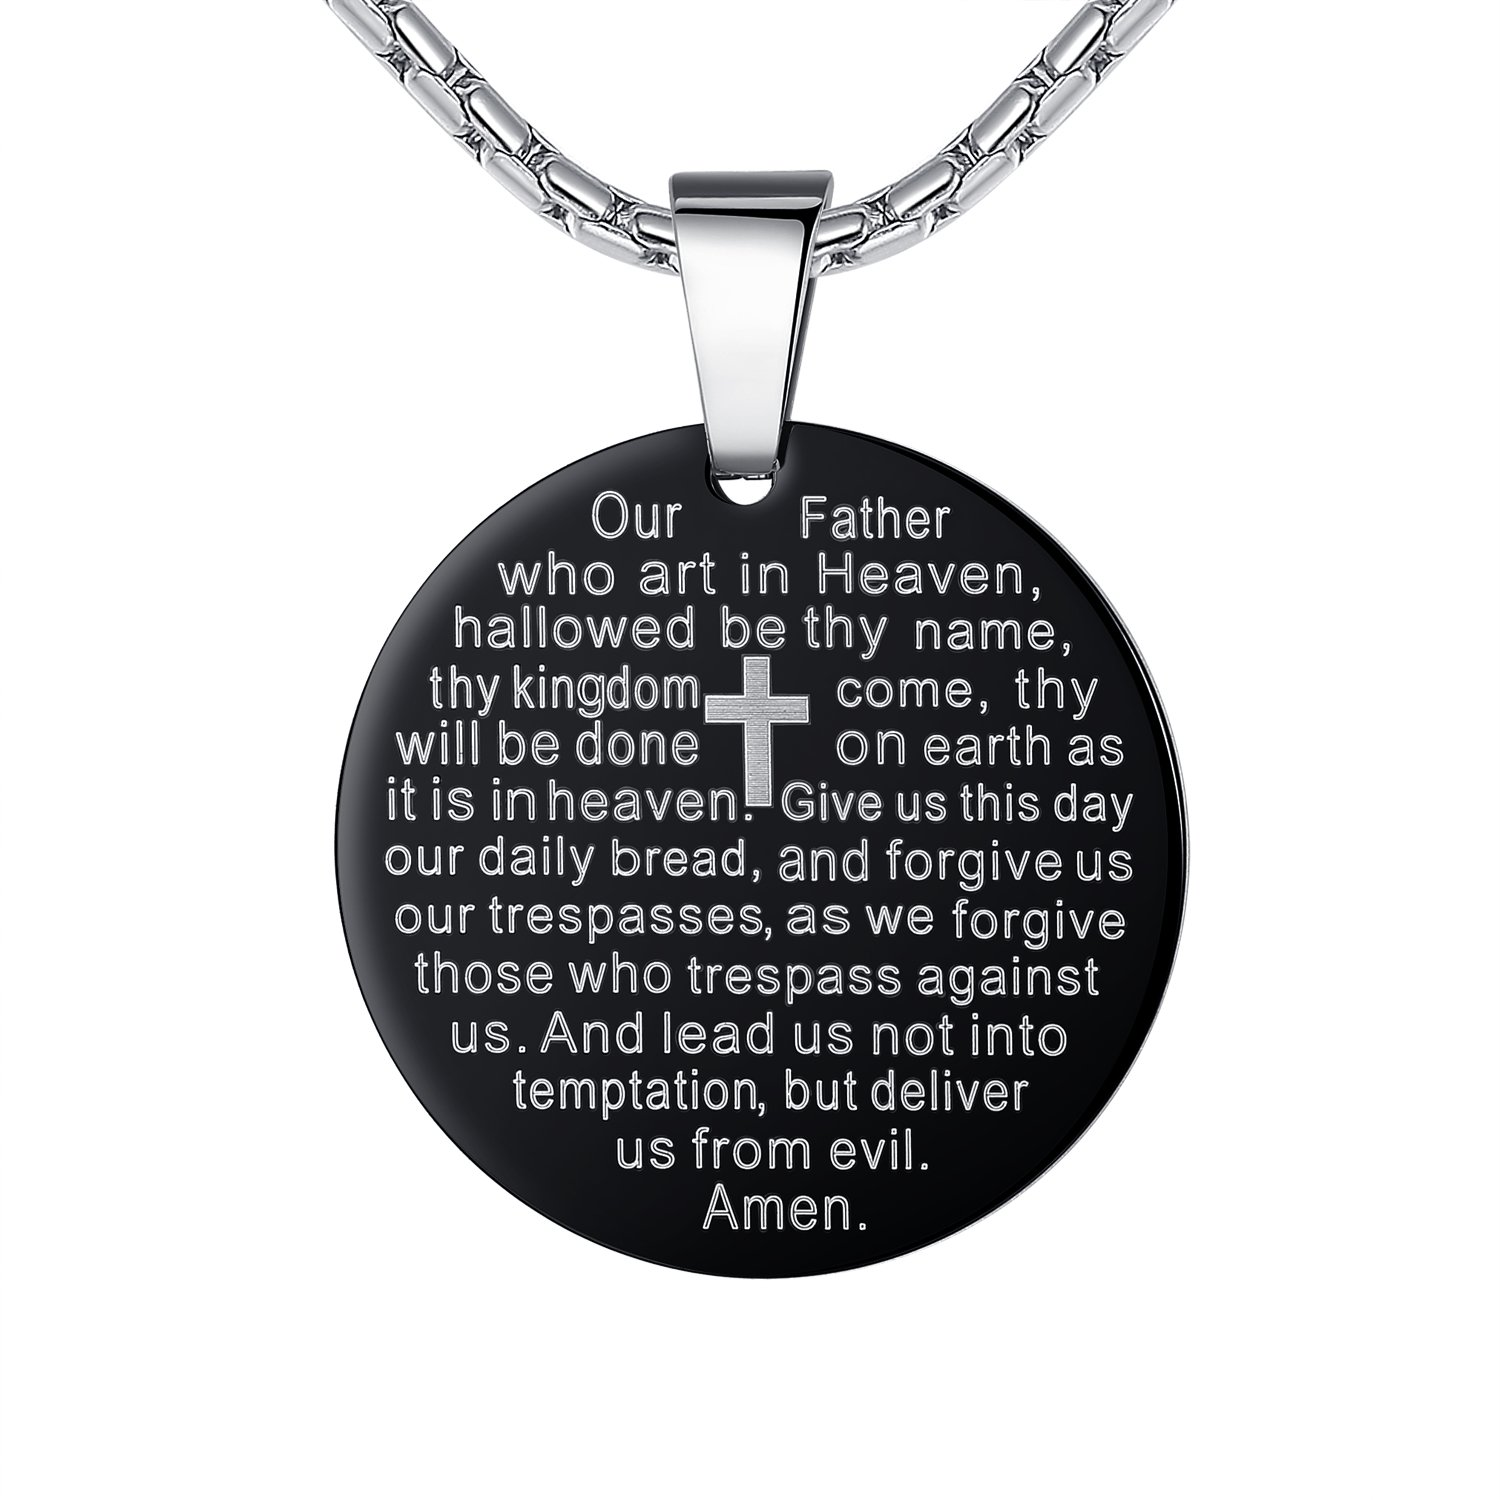 steel pendant inflowcomponent global necklace jewelry bible s p dog molike tag content res stainless serenity technicalissues verse prayer cross and mens inflow